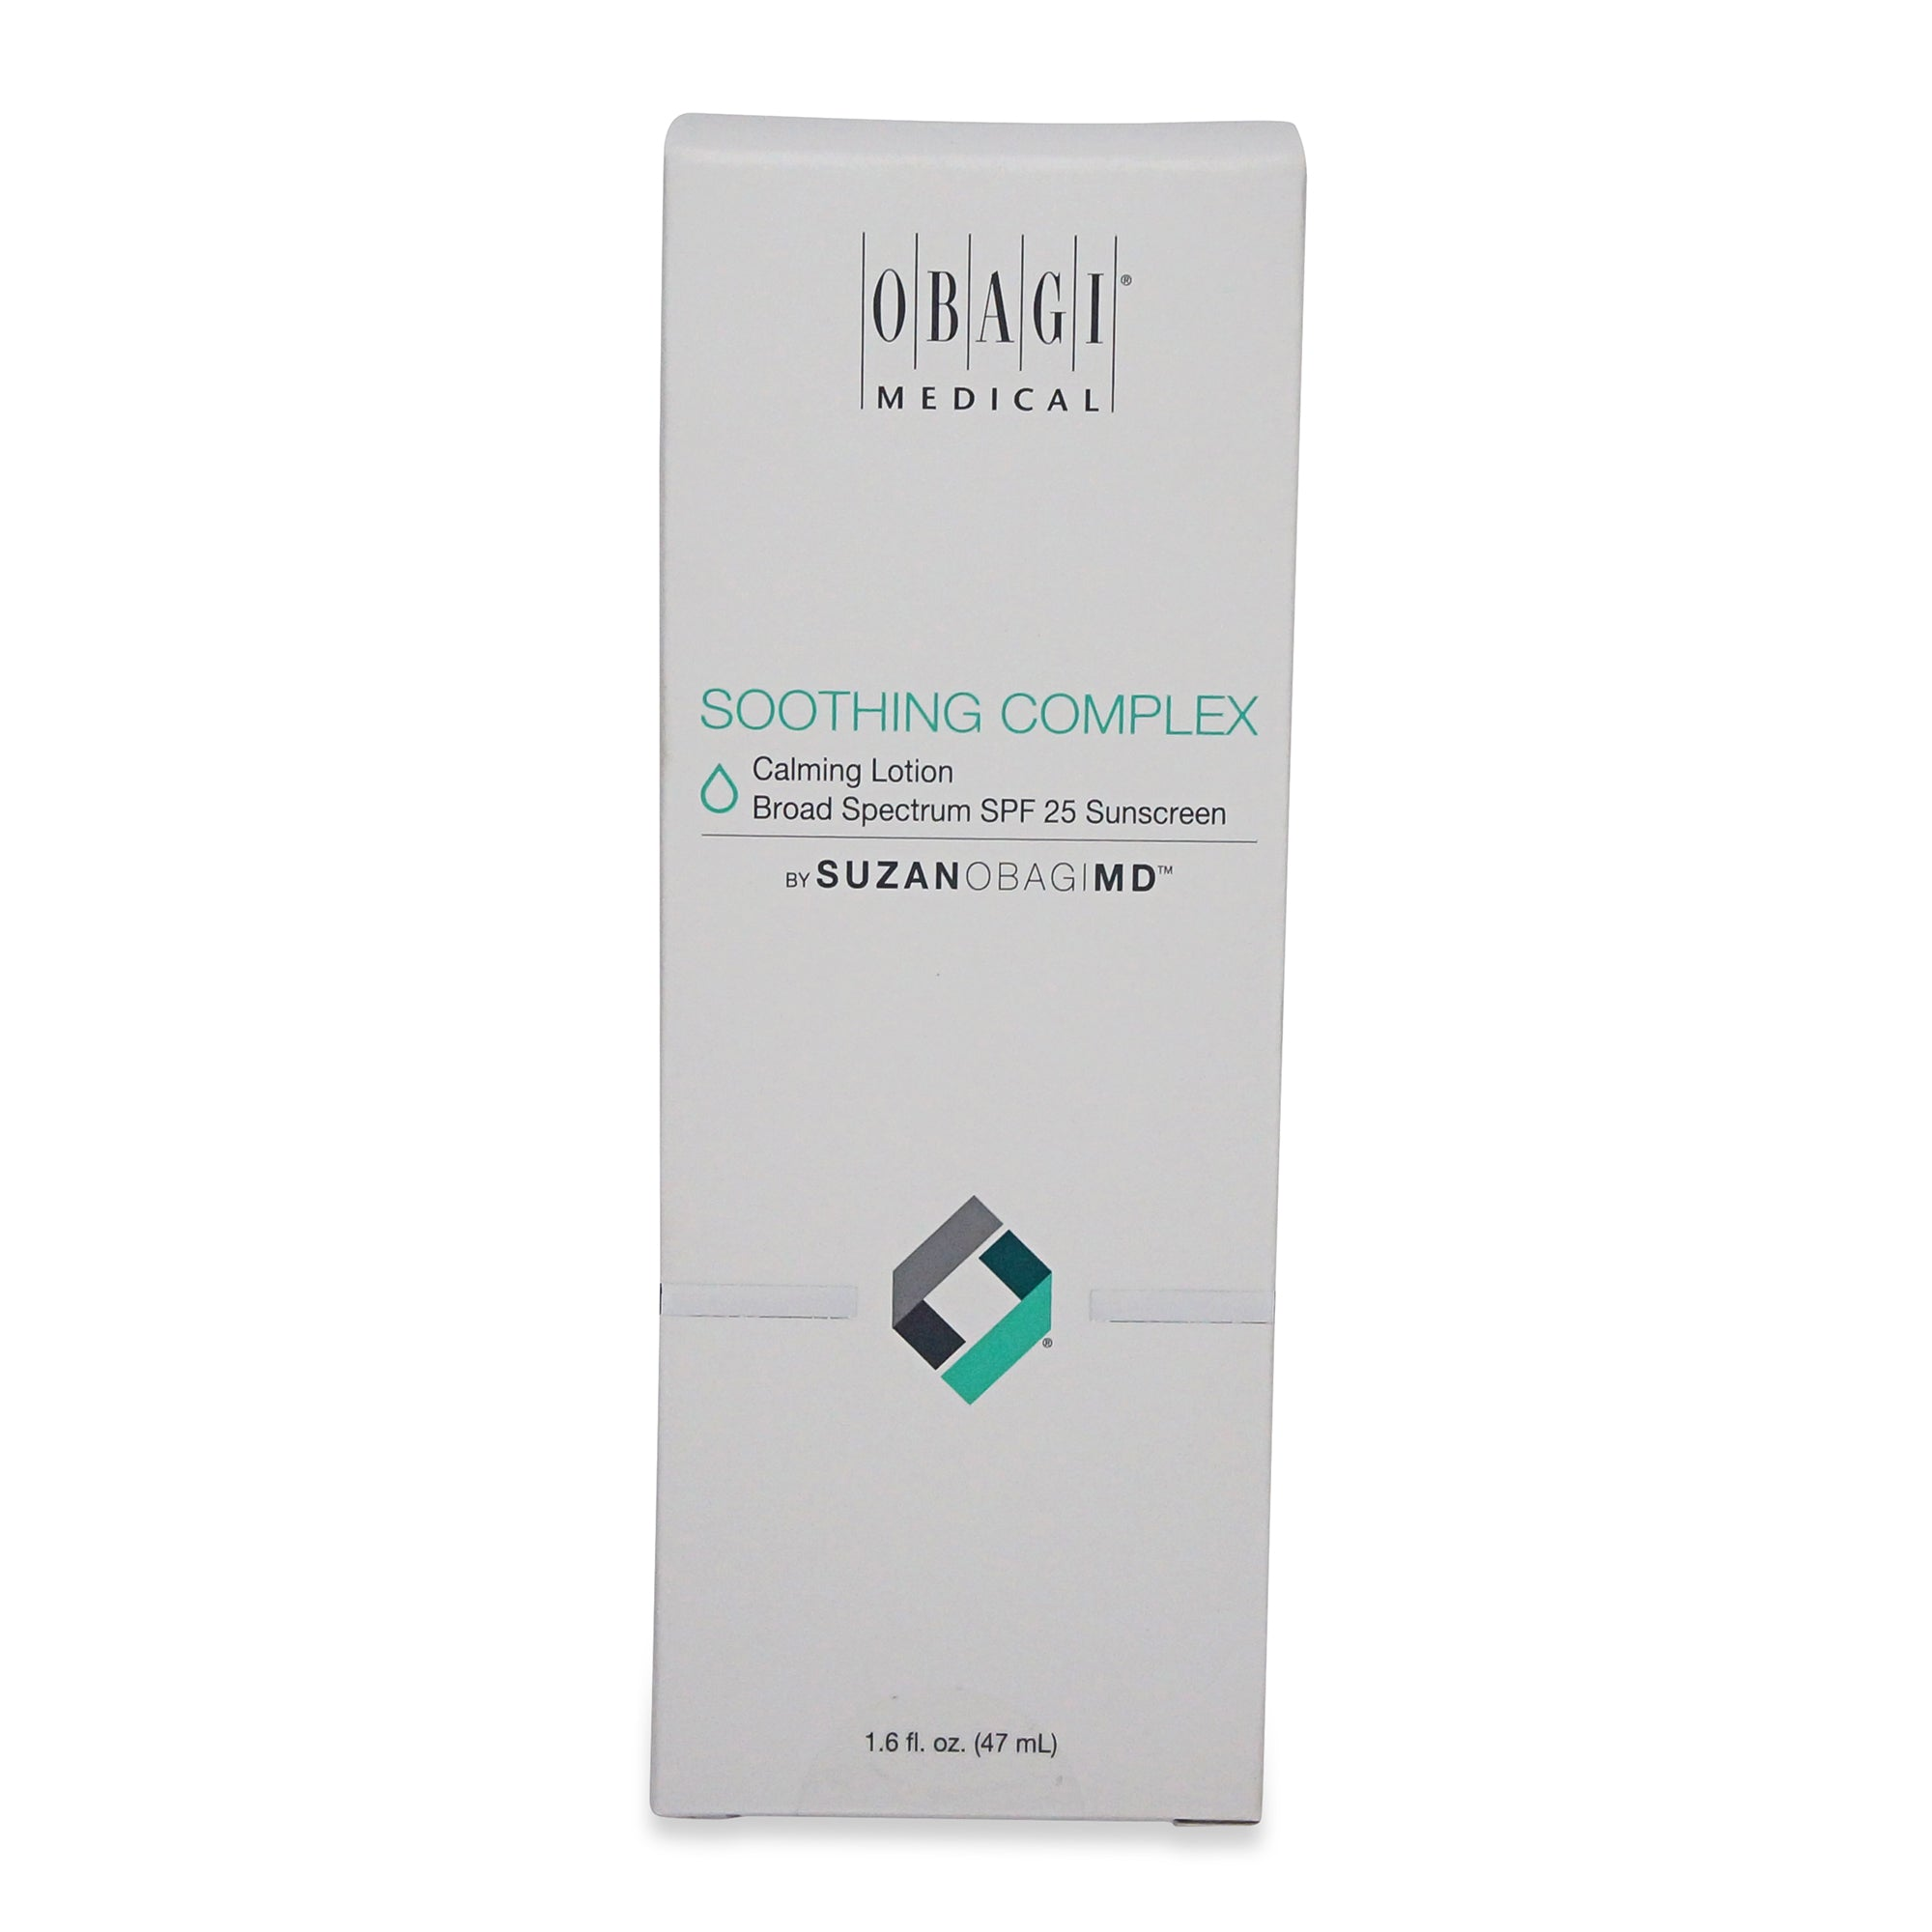 OBAGI ~ SUZANOBAGIMD ~ SOOTHING COMPLEX CALMING LOTION SPF25 ~ 1.6OZ  *NEW2019*